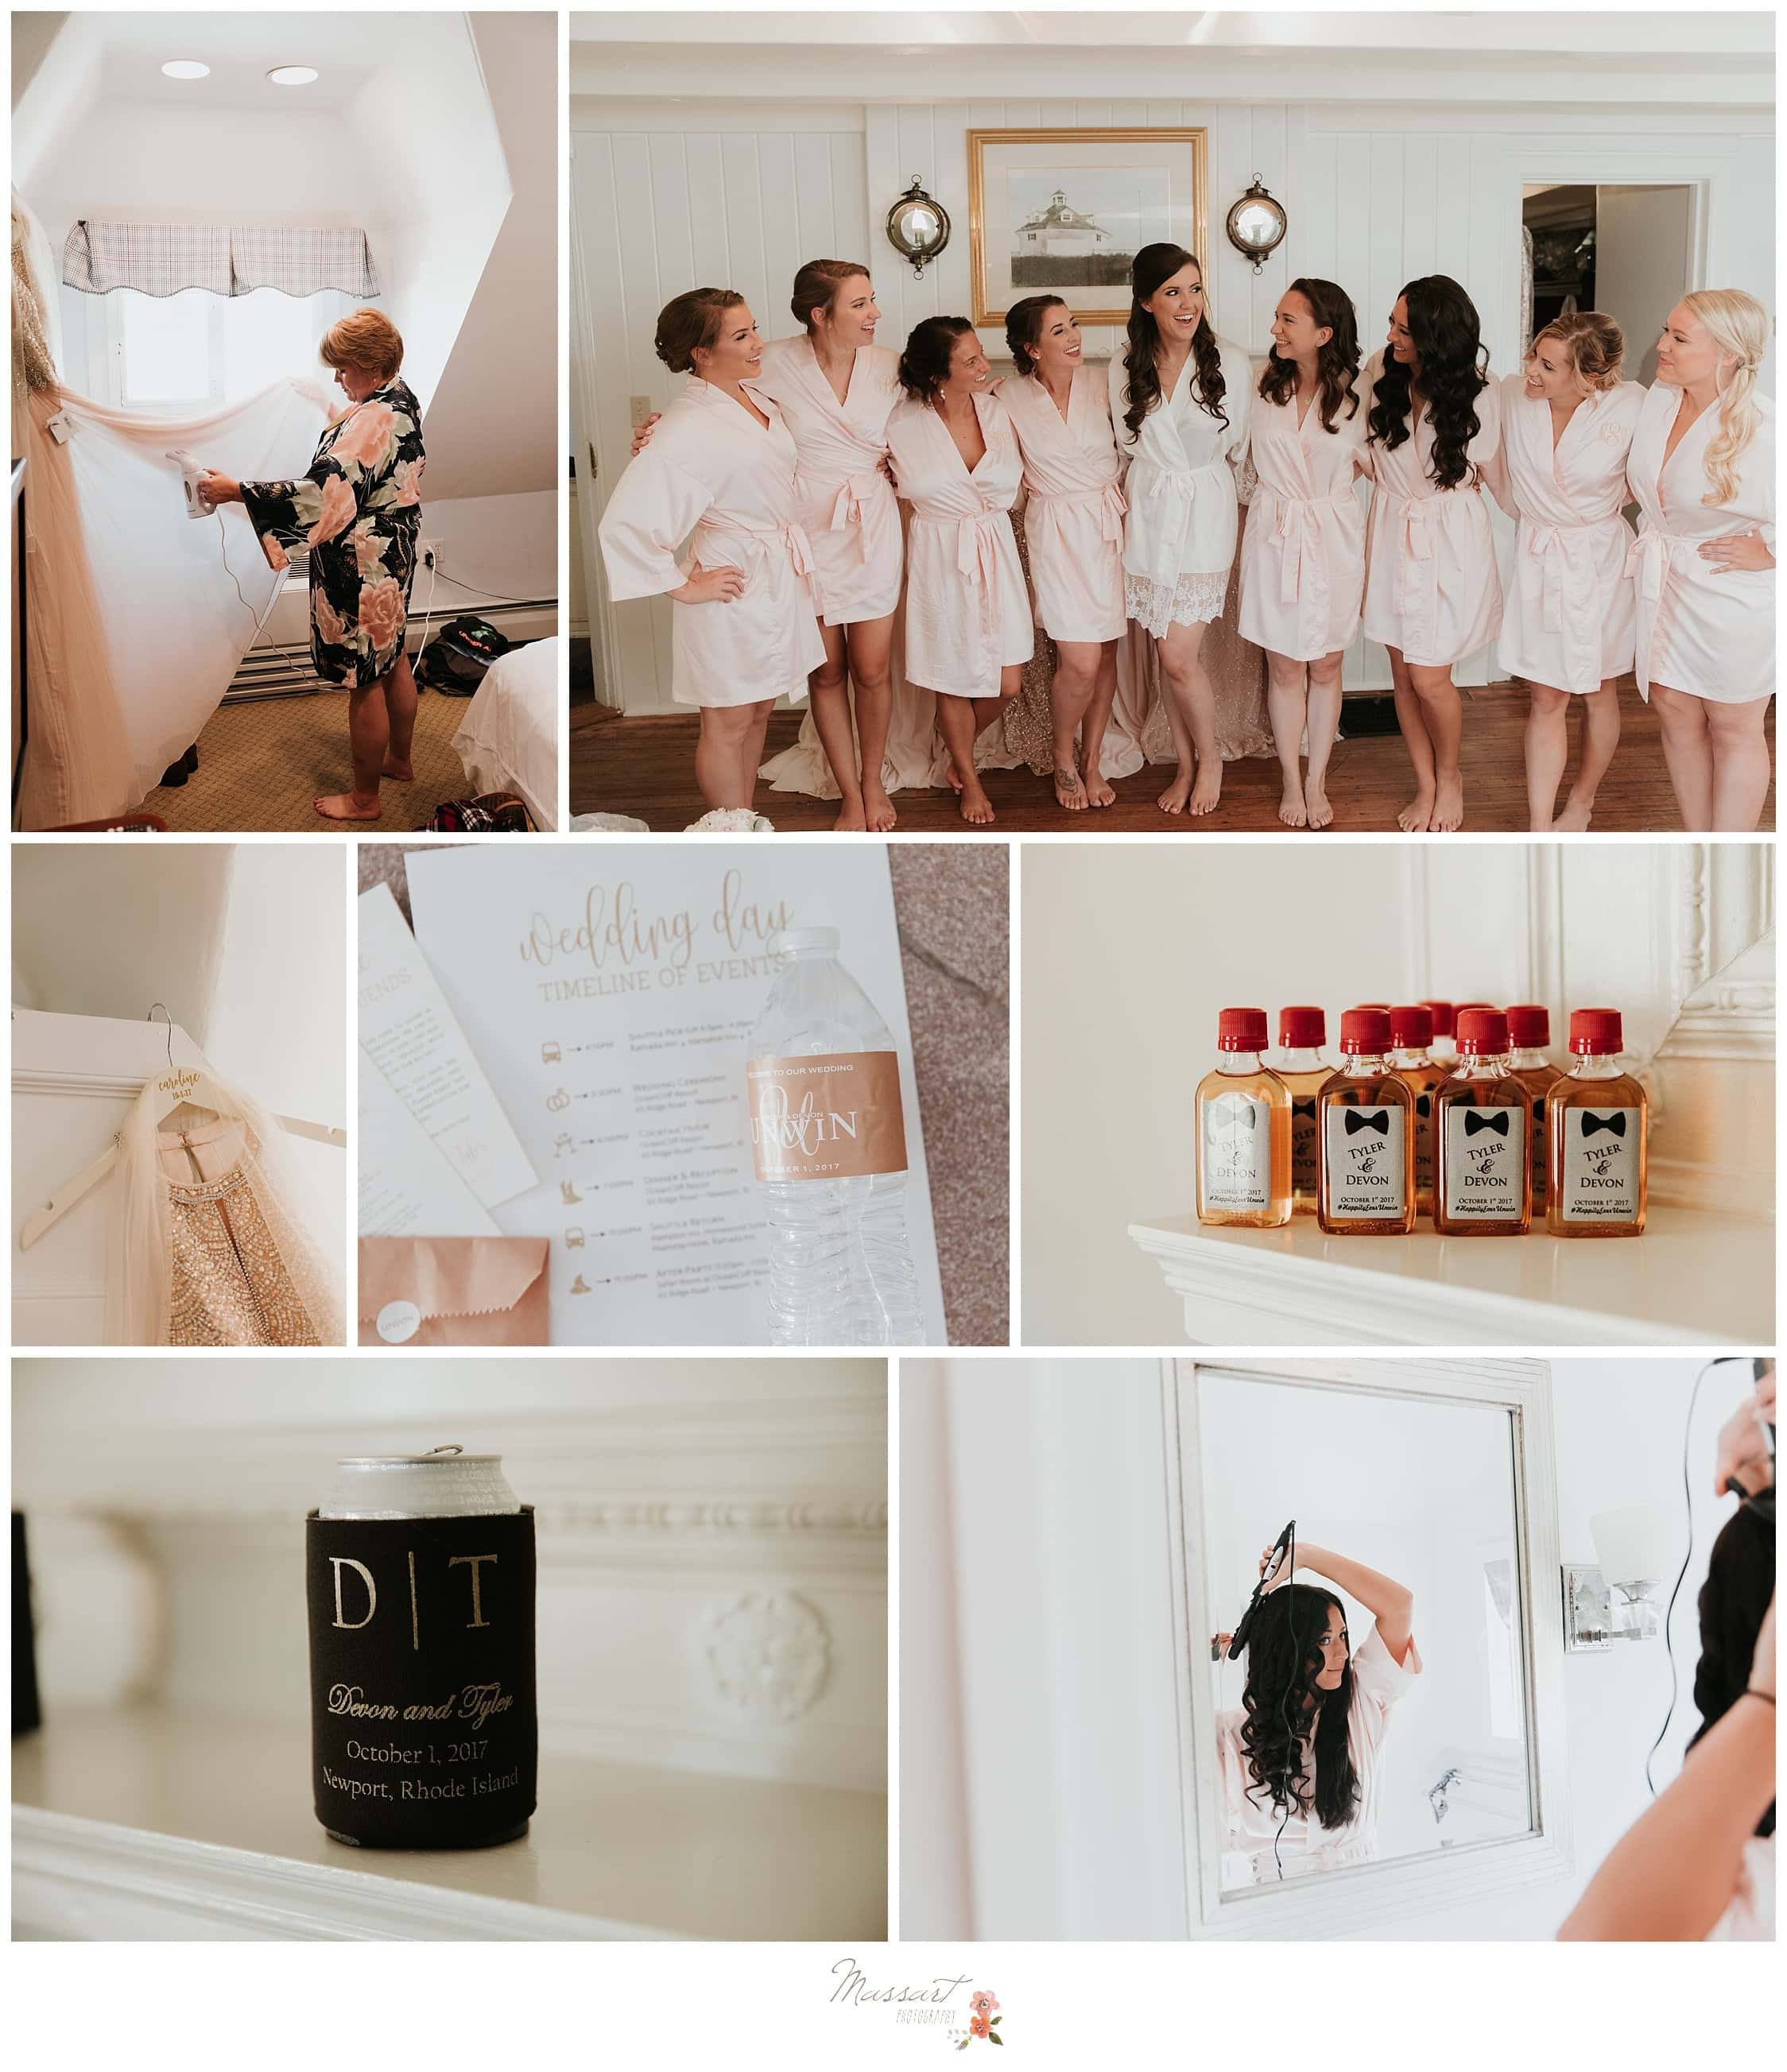 The bride and bridesmaid have fun while getting ready for the Ocean Cliff wedding photographed by Massart Photography RI